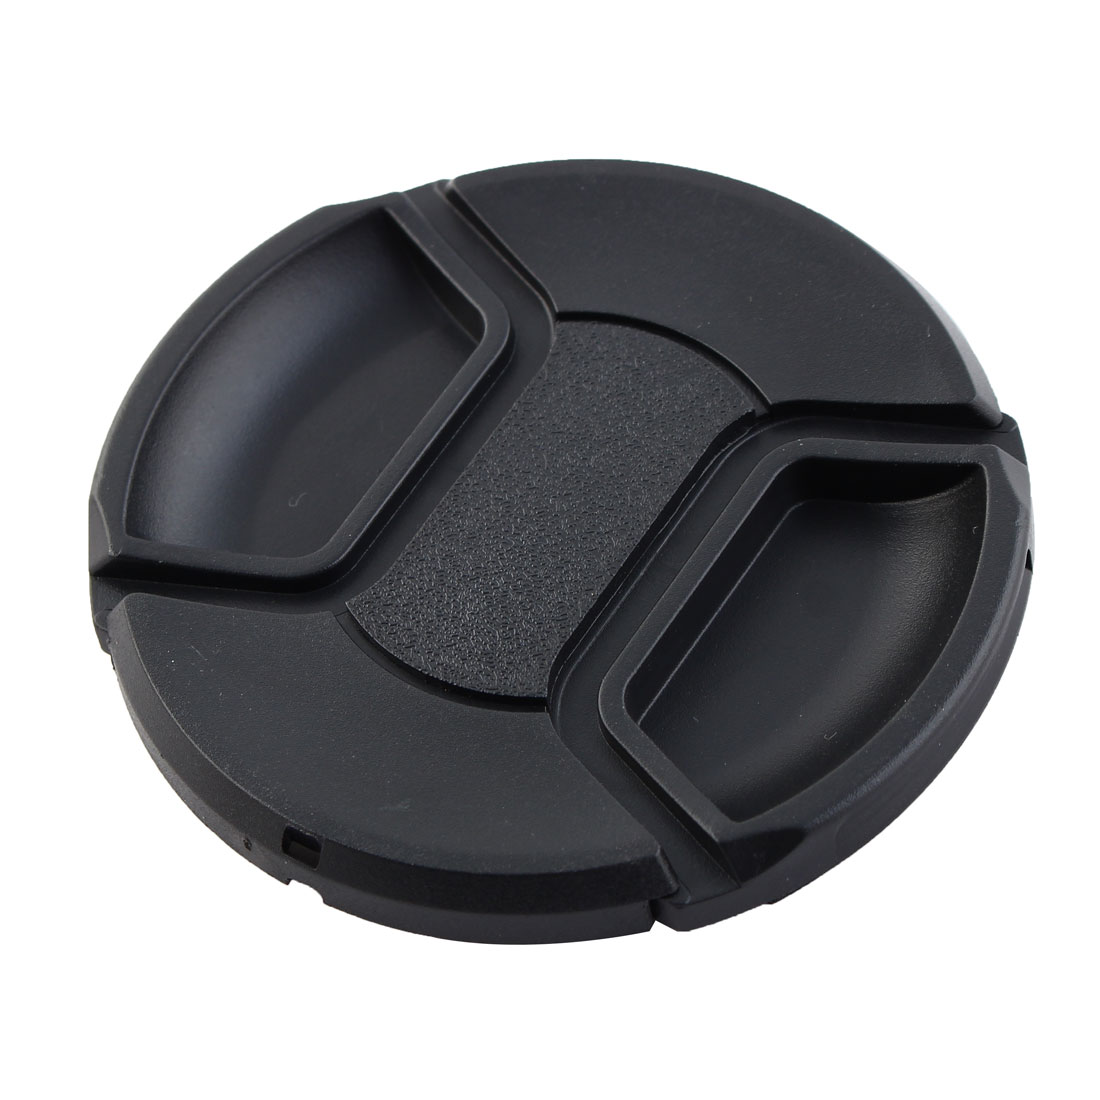 72mm Center Pinch Snap Front Lens Cap Hood Cover for Filter